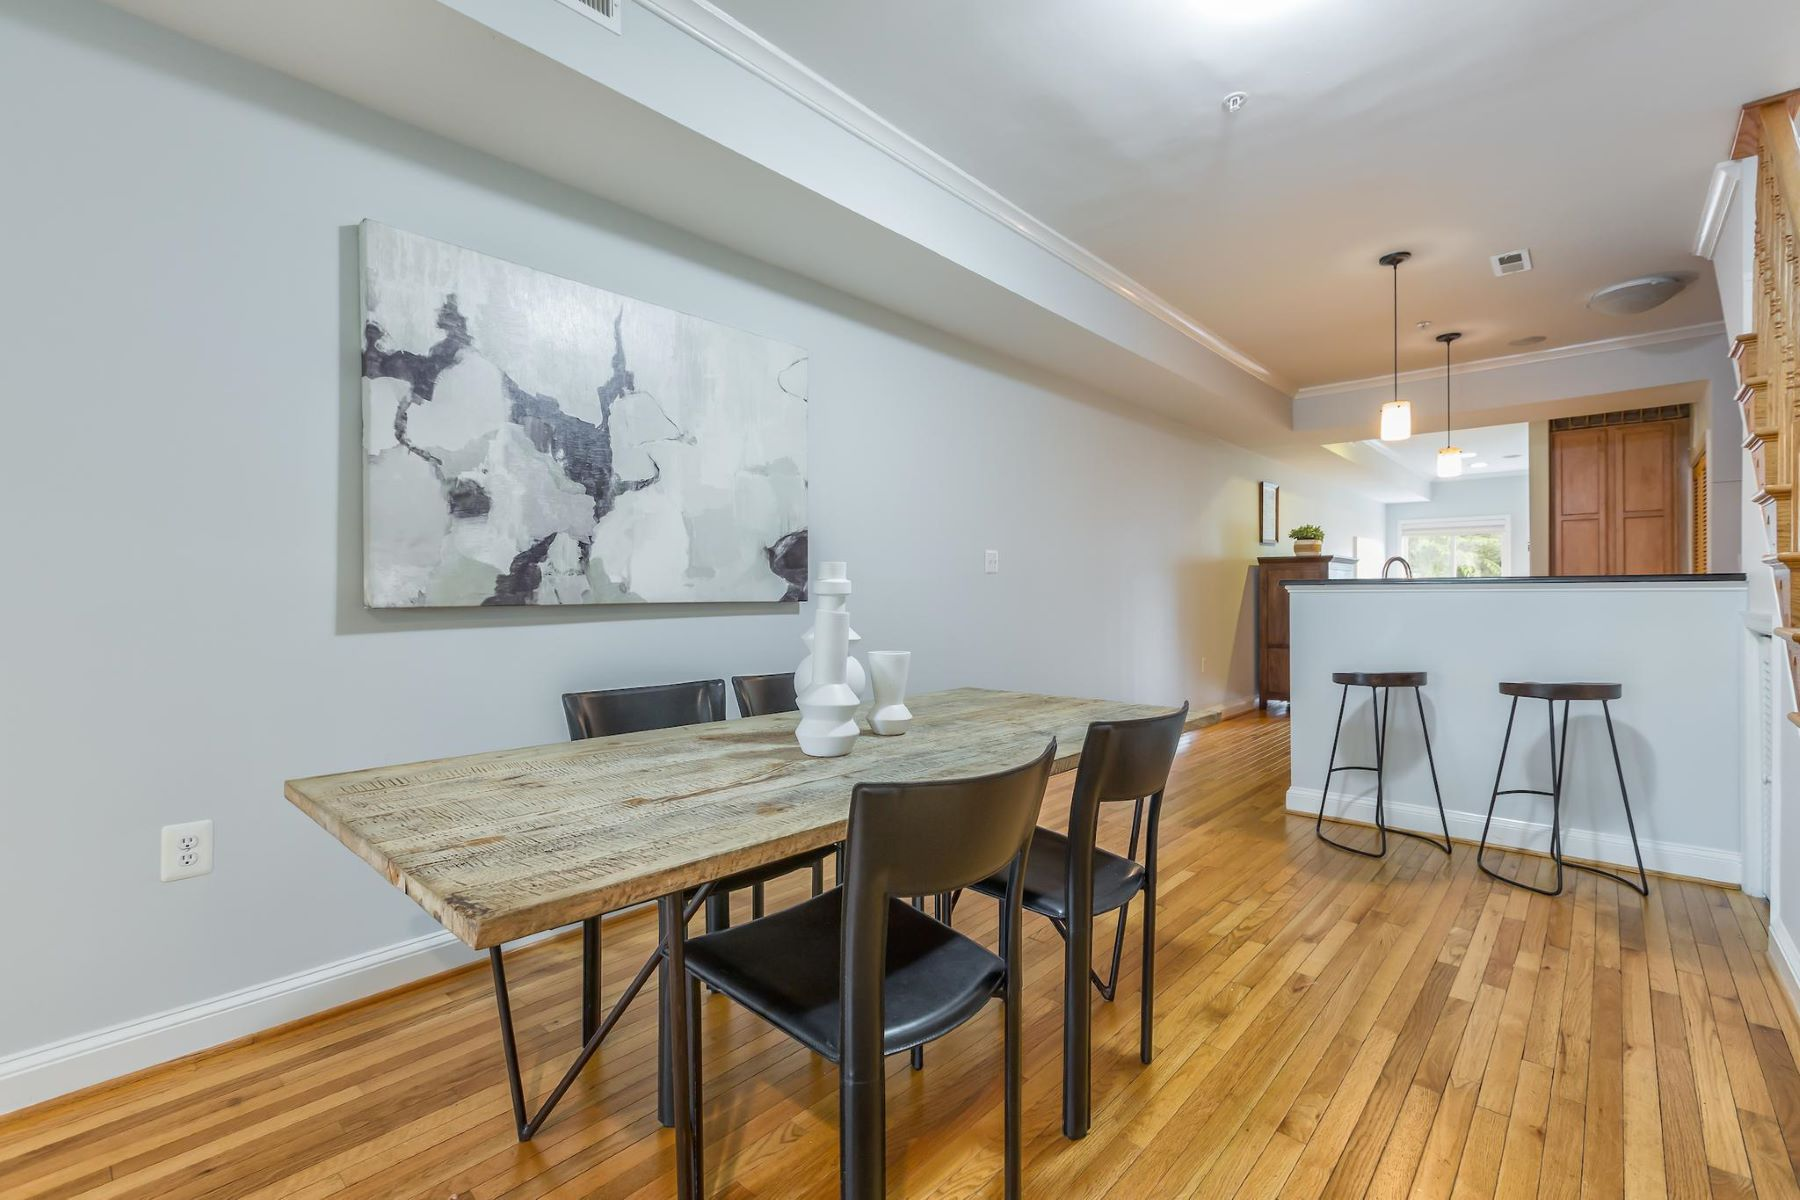 Additional photo for property listing at 1612 5th St NW #2 1612 5th St NW #2 Washington, District Of Columbia 20001 United States